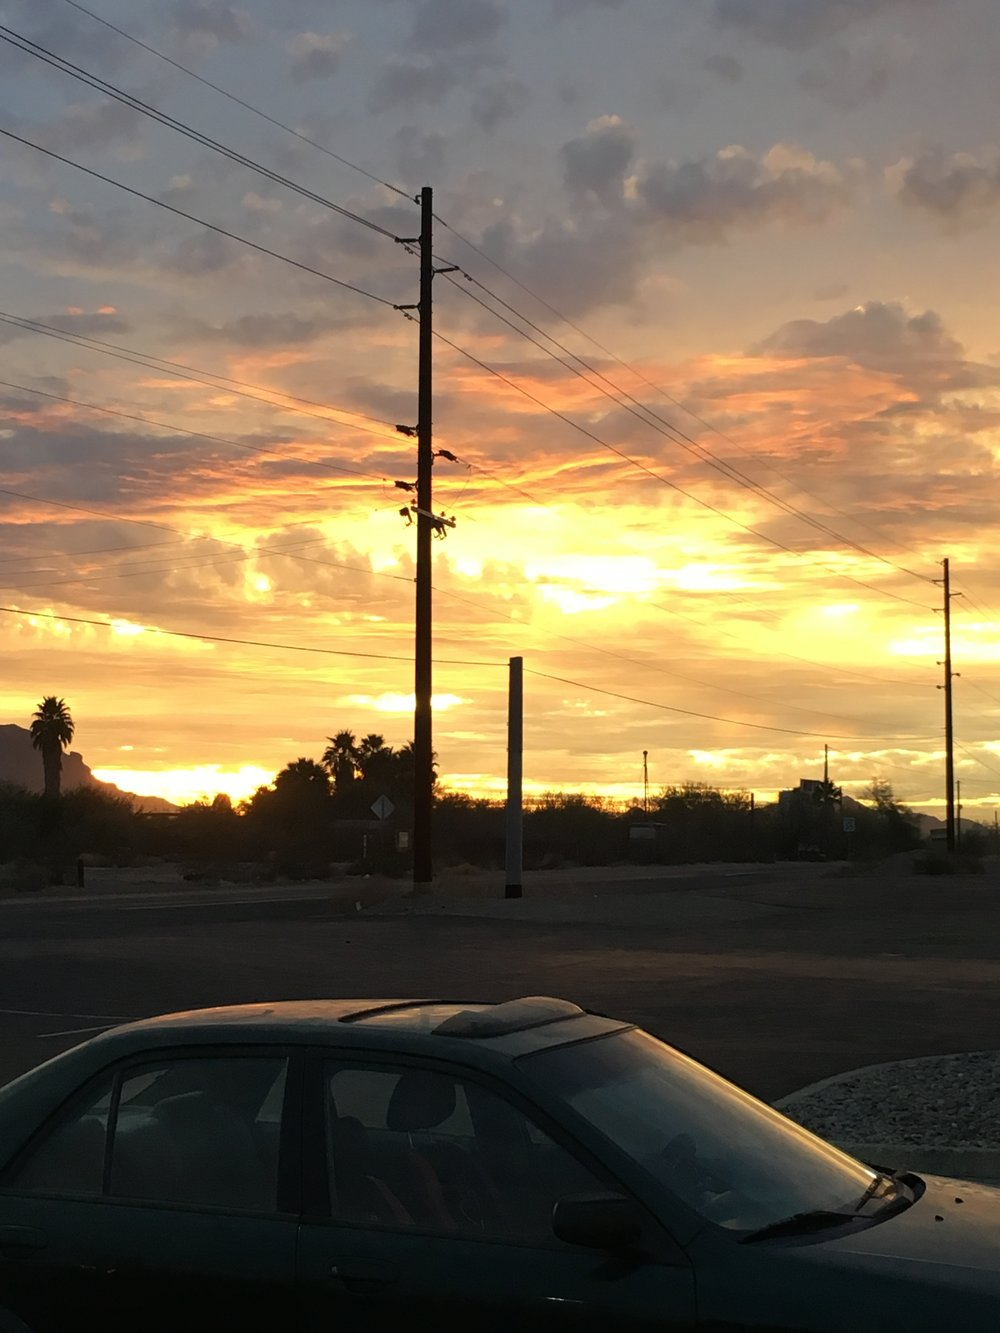 Sunsets in the southwest are always impressive.